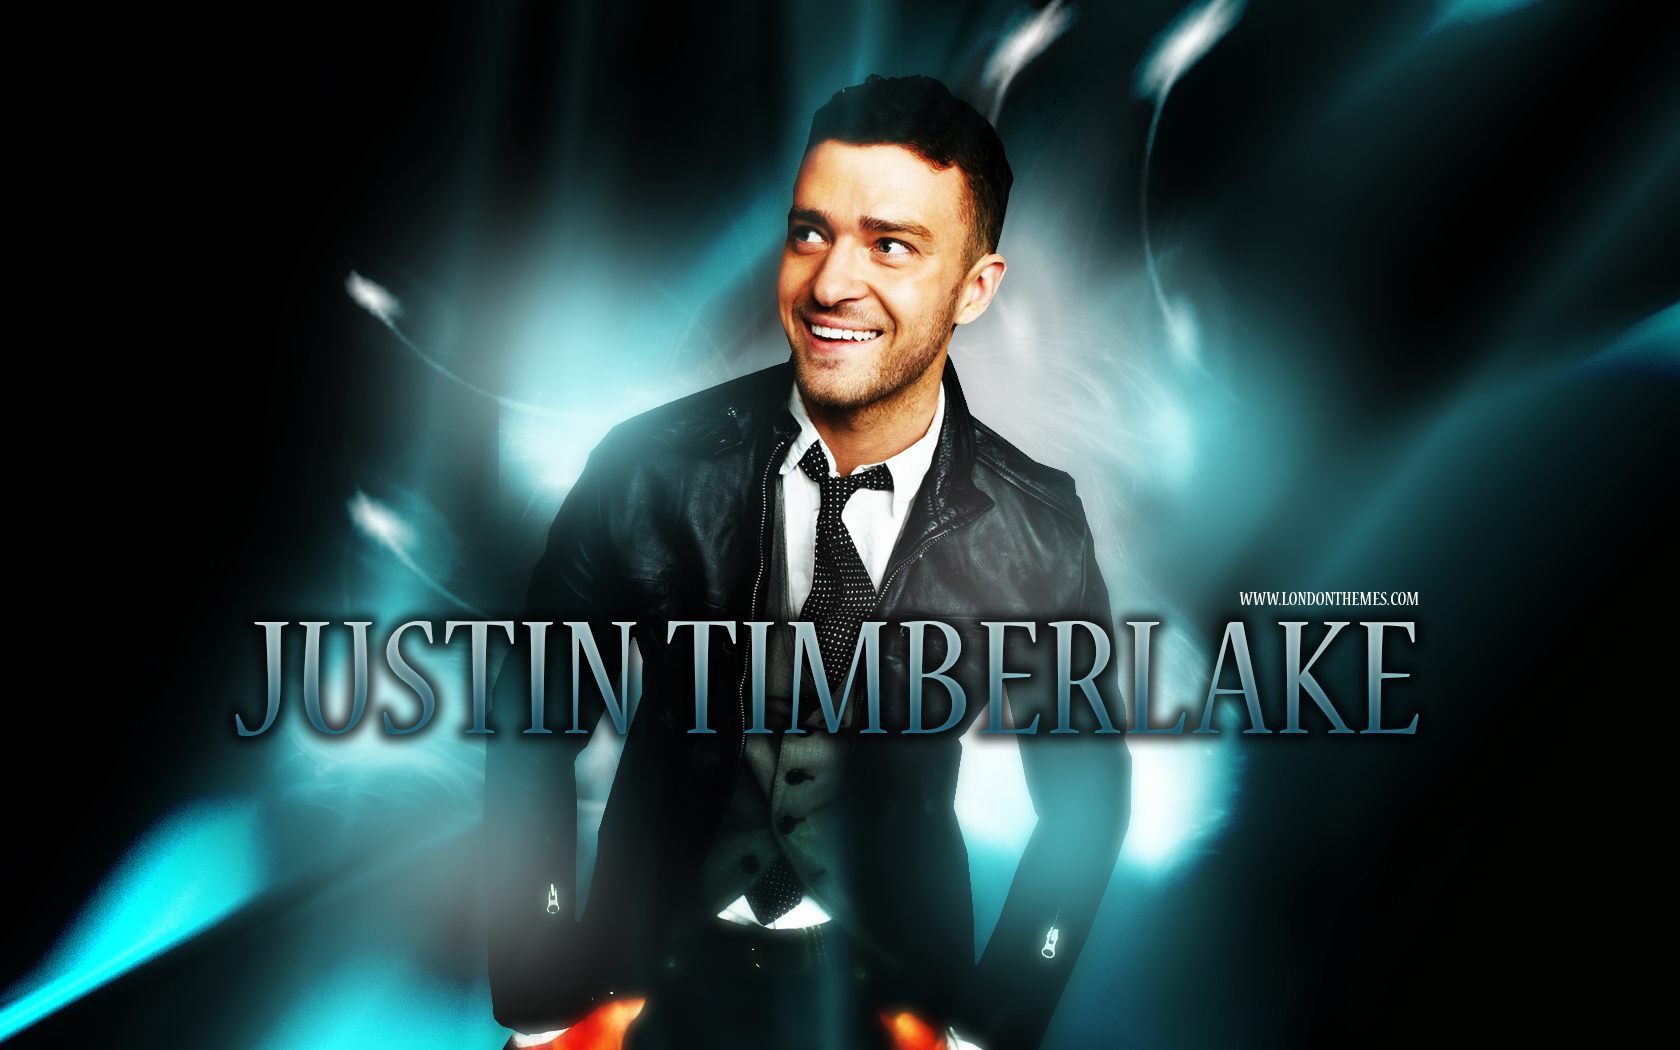 Target and Justin Timberlake Team Up Again to Deliver Two